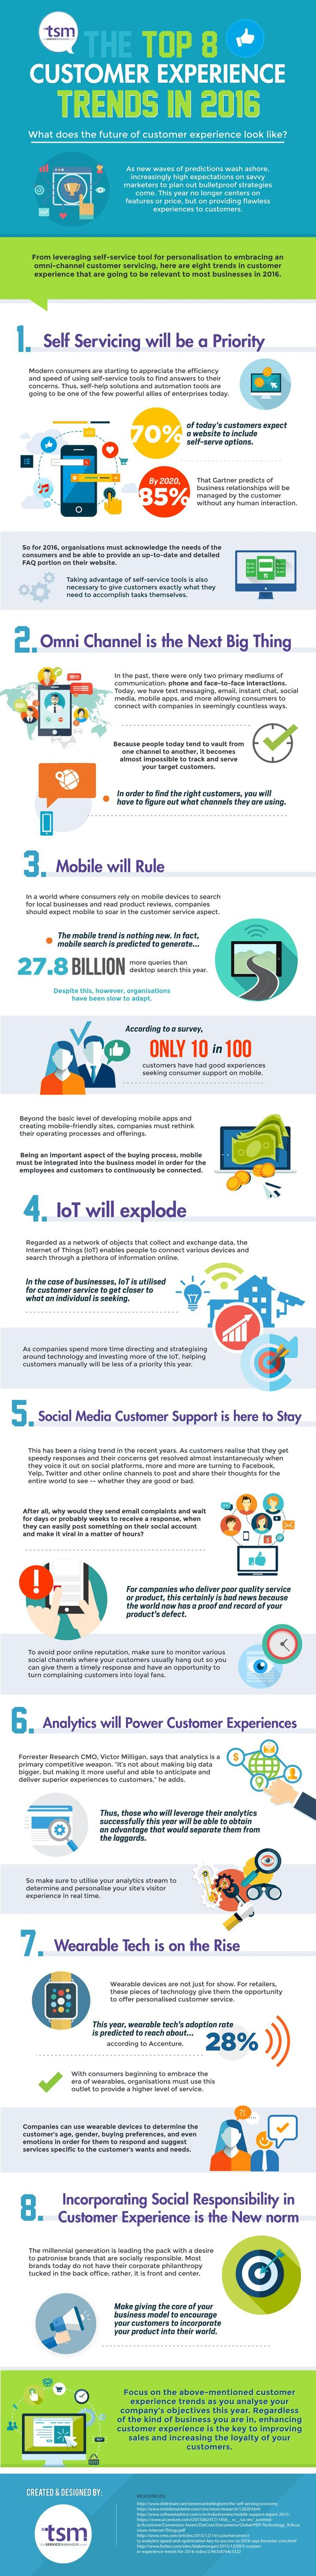 [INFOGRAPHIC] 8 Top Customer Experience Trends in 2016 | RetailNext